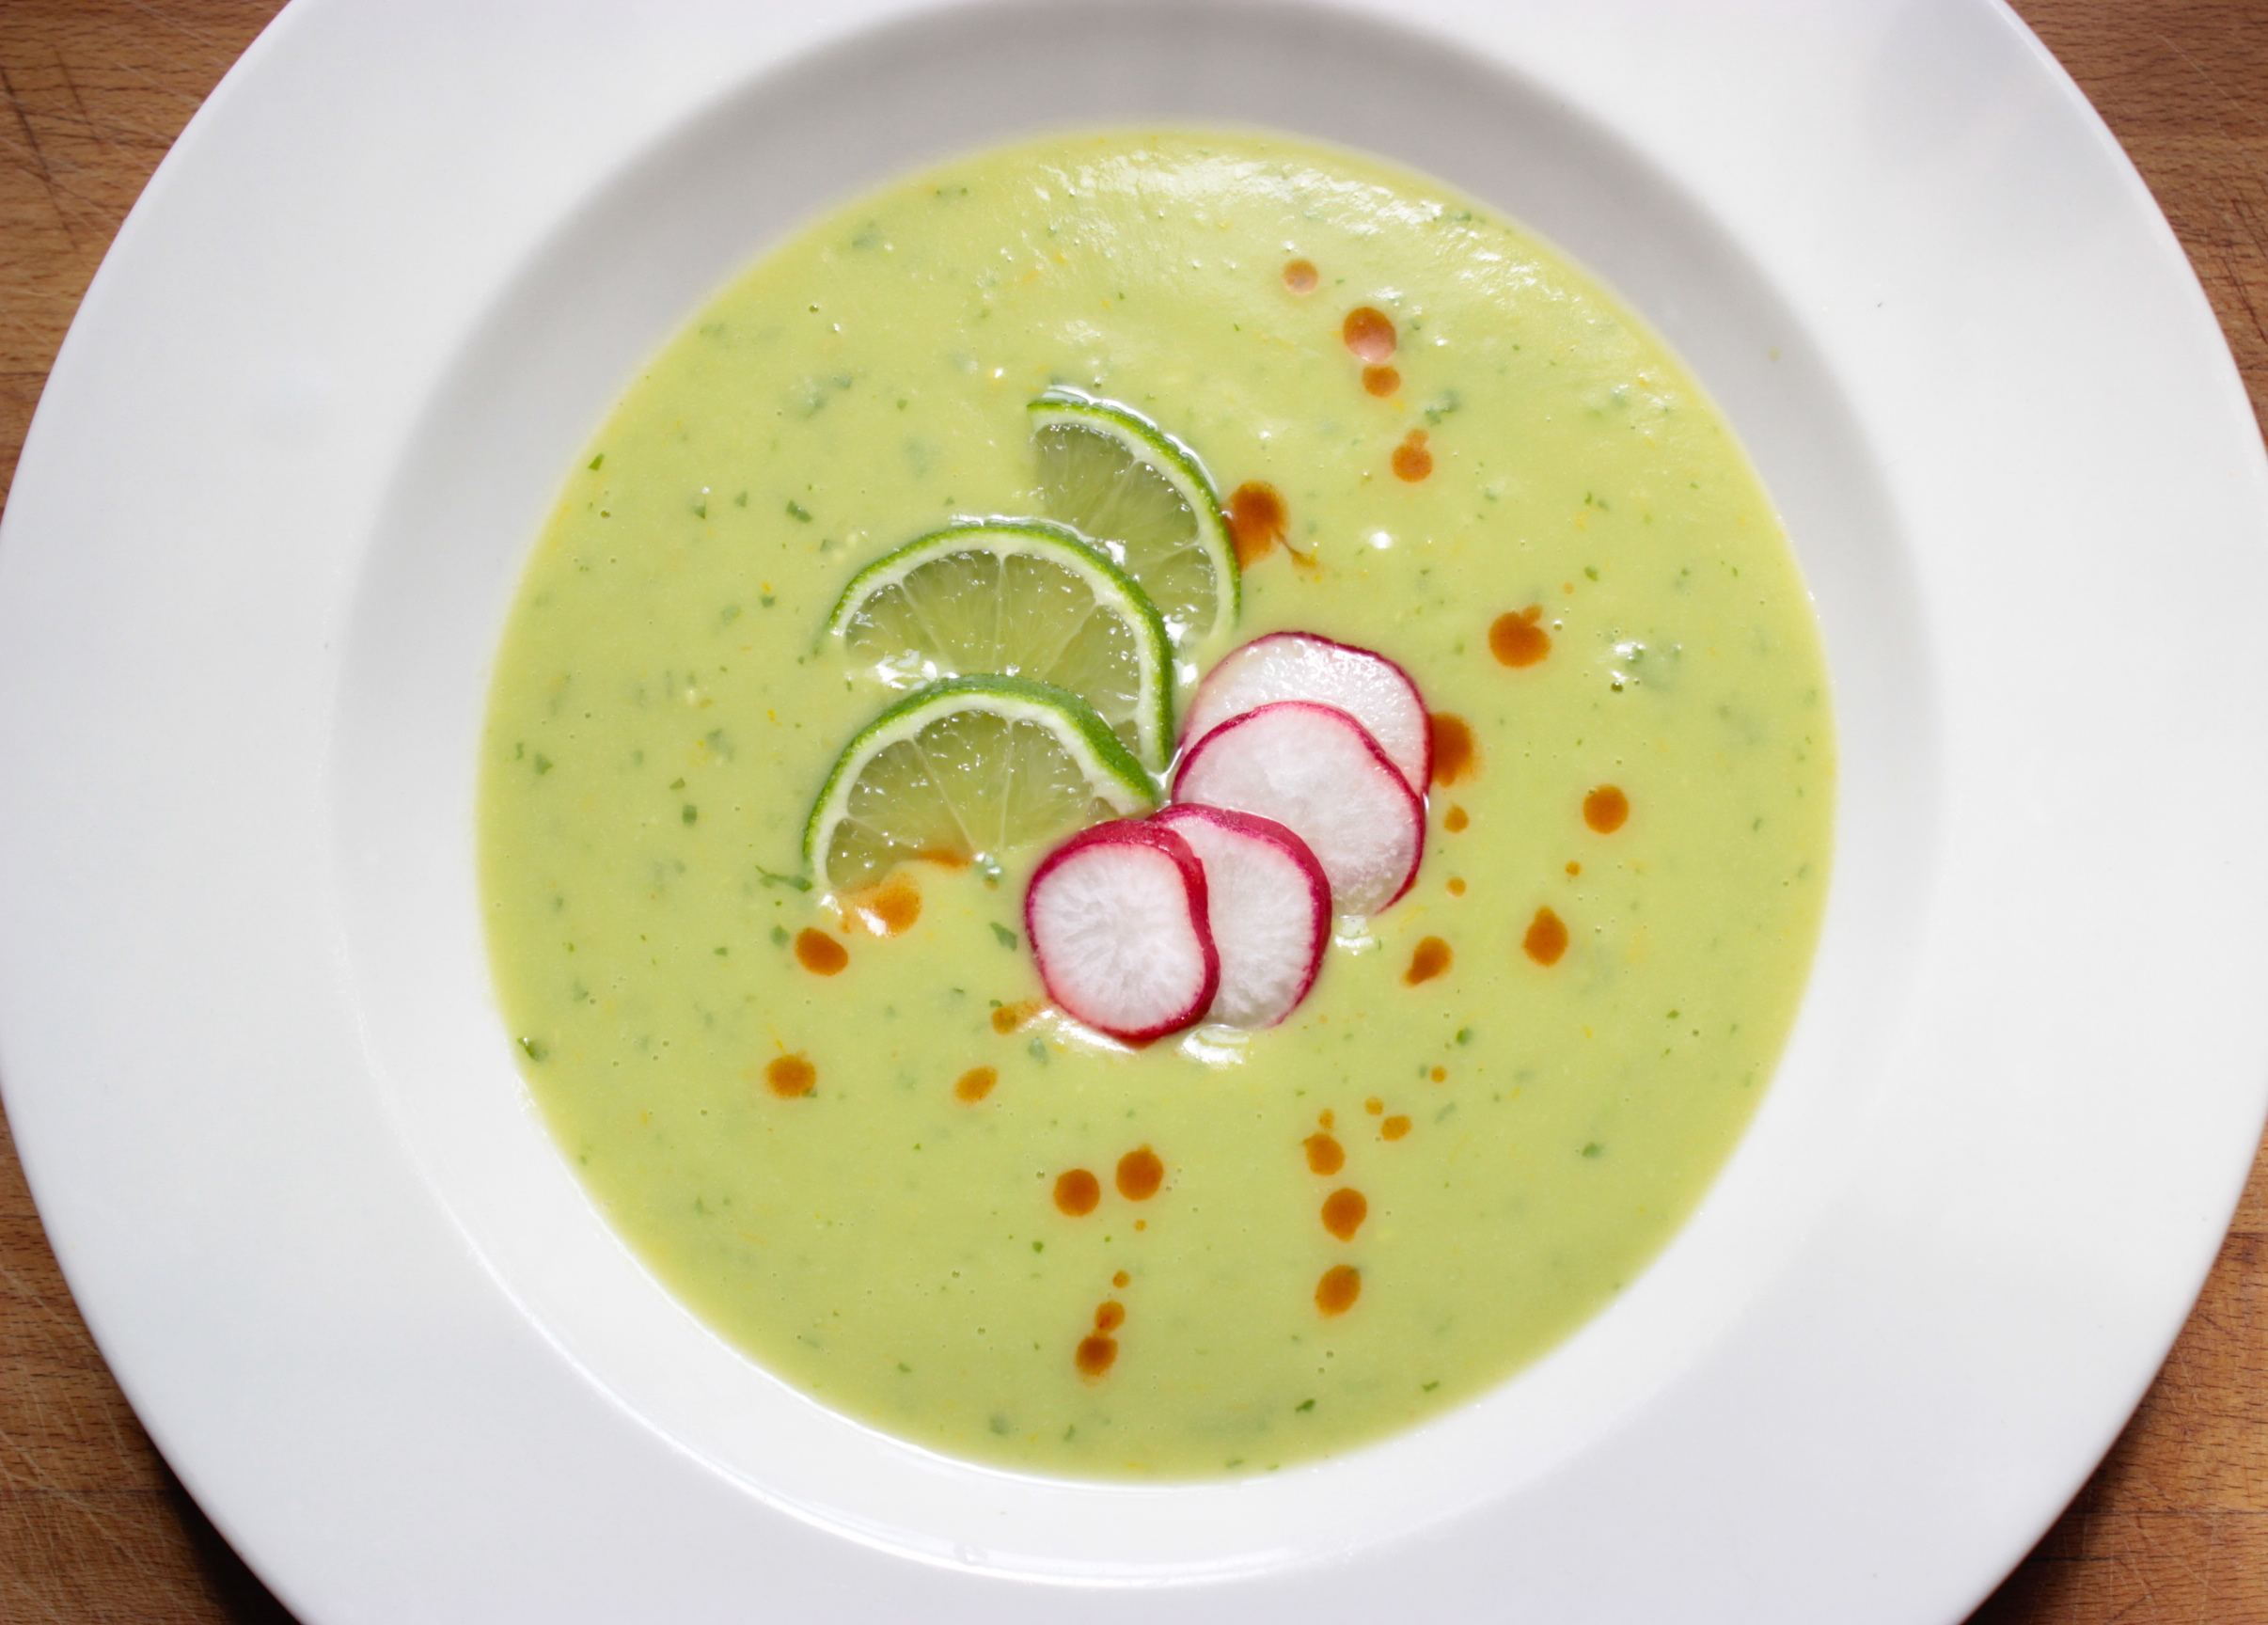 Chilled Avocado Soup/ Last Minute Cold Soup Roundup | Big Sis Little ...